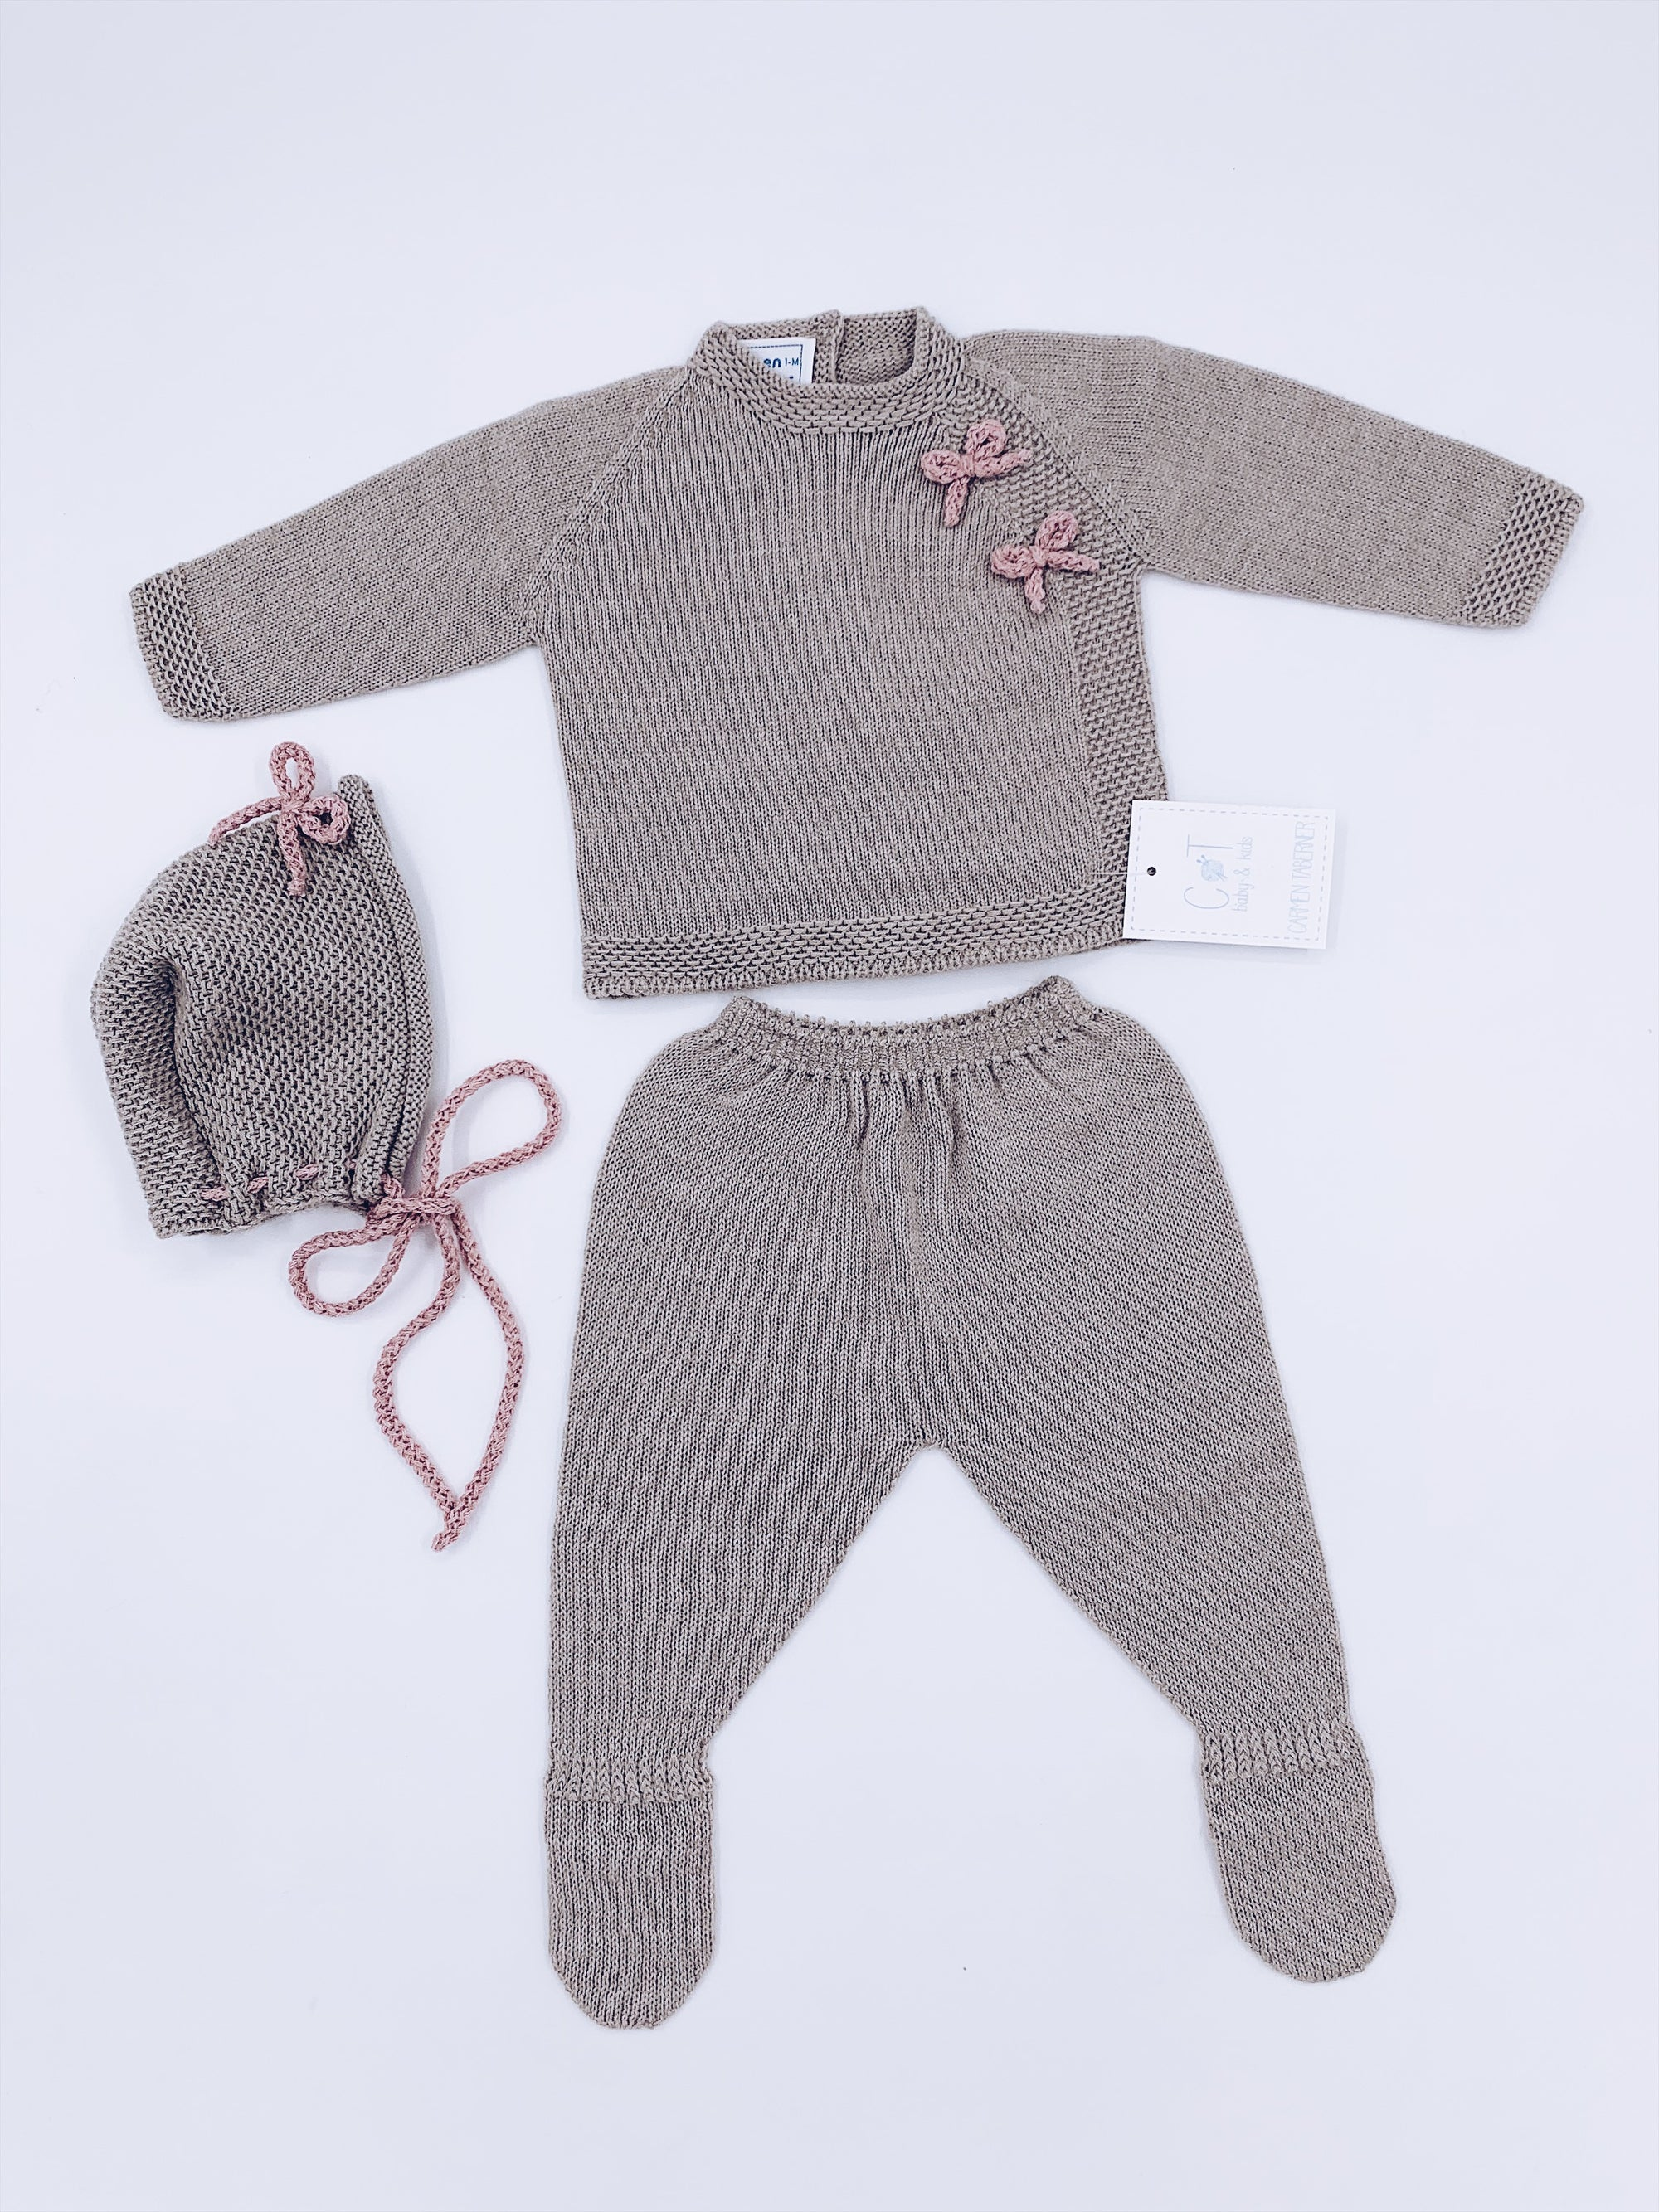 Carmen Taberner Knitted Baby 3 piece set